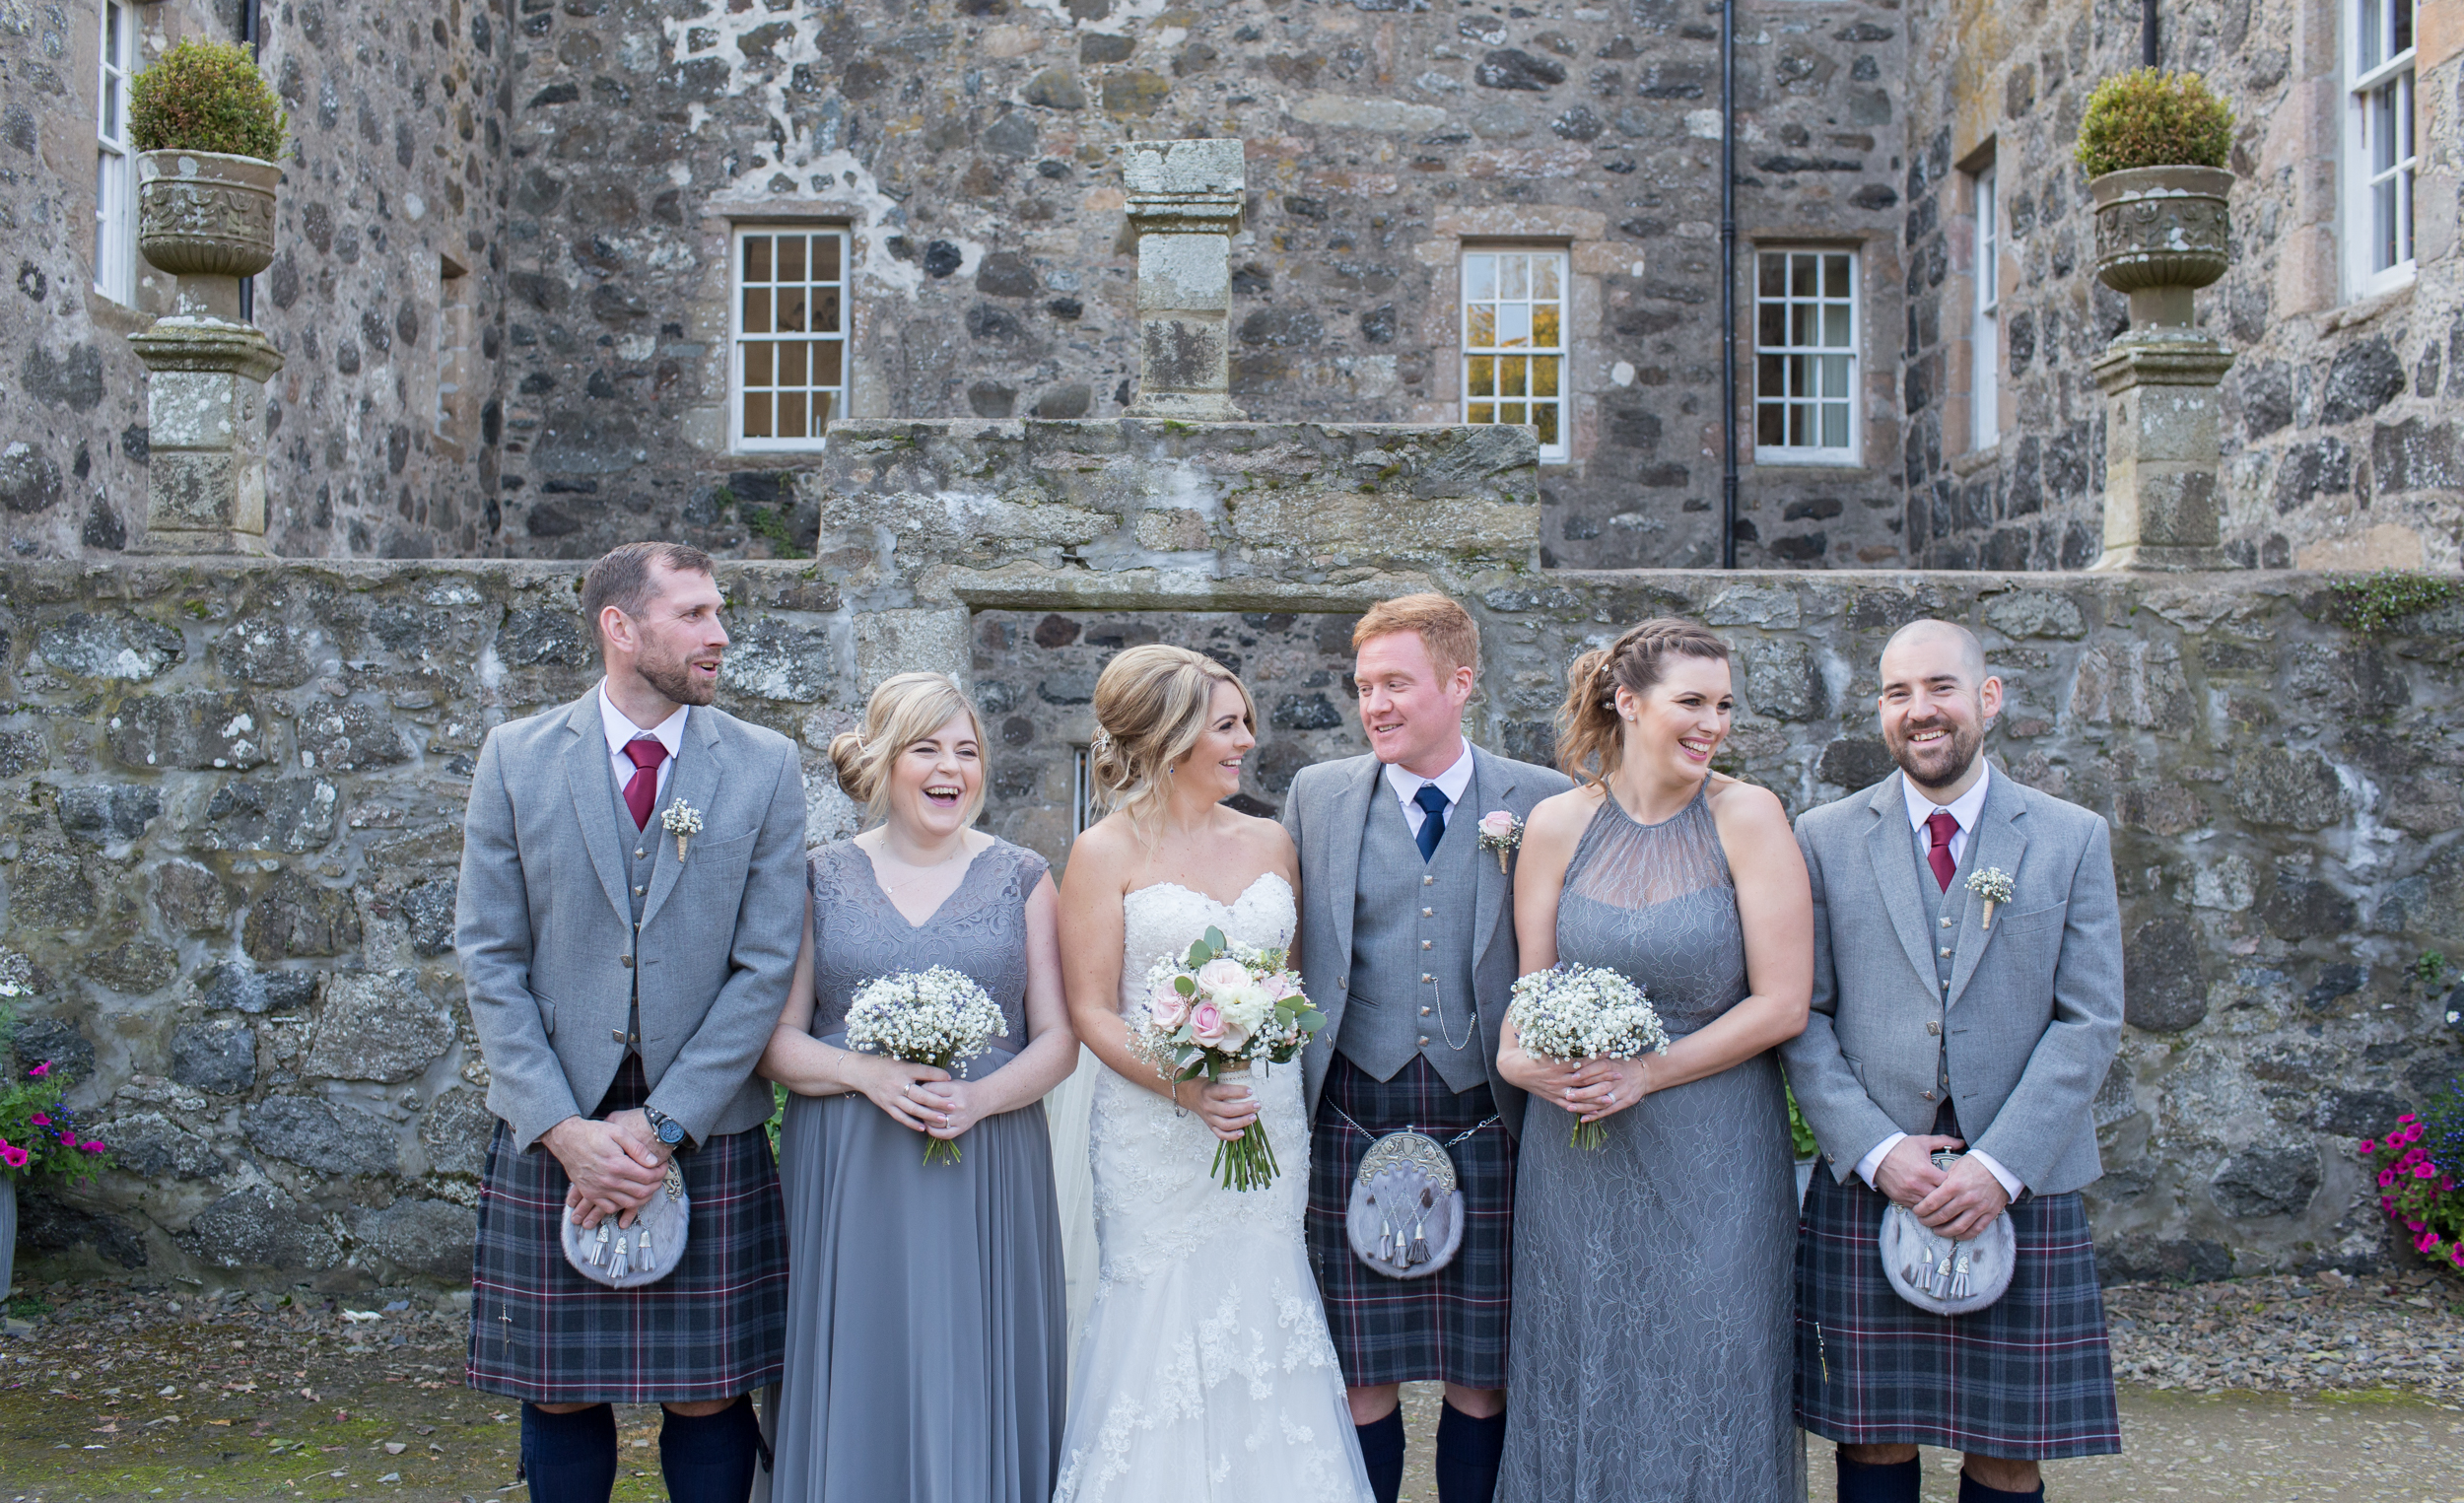 the barn at barra wedding, wedding photography barn at barra castle, barn at barra castle oldmeldrum, barn wedding Aberdeen, Aberdeen wedding photographer, wedding photographer in aberdeen